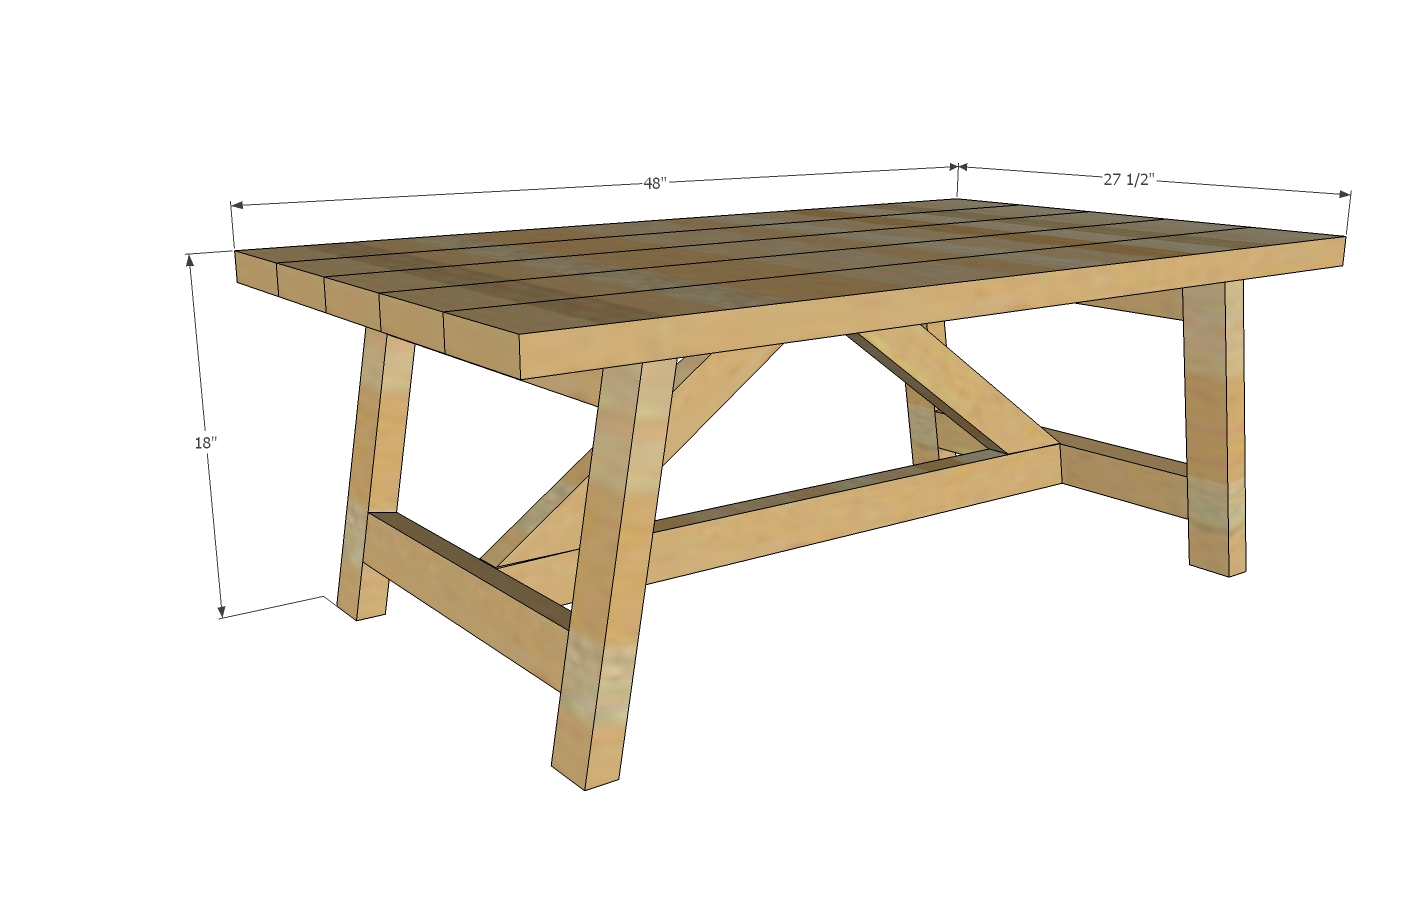 Homestead Storage Shed Free Woodworking Plans Coffee Table